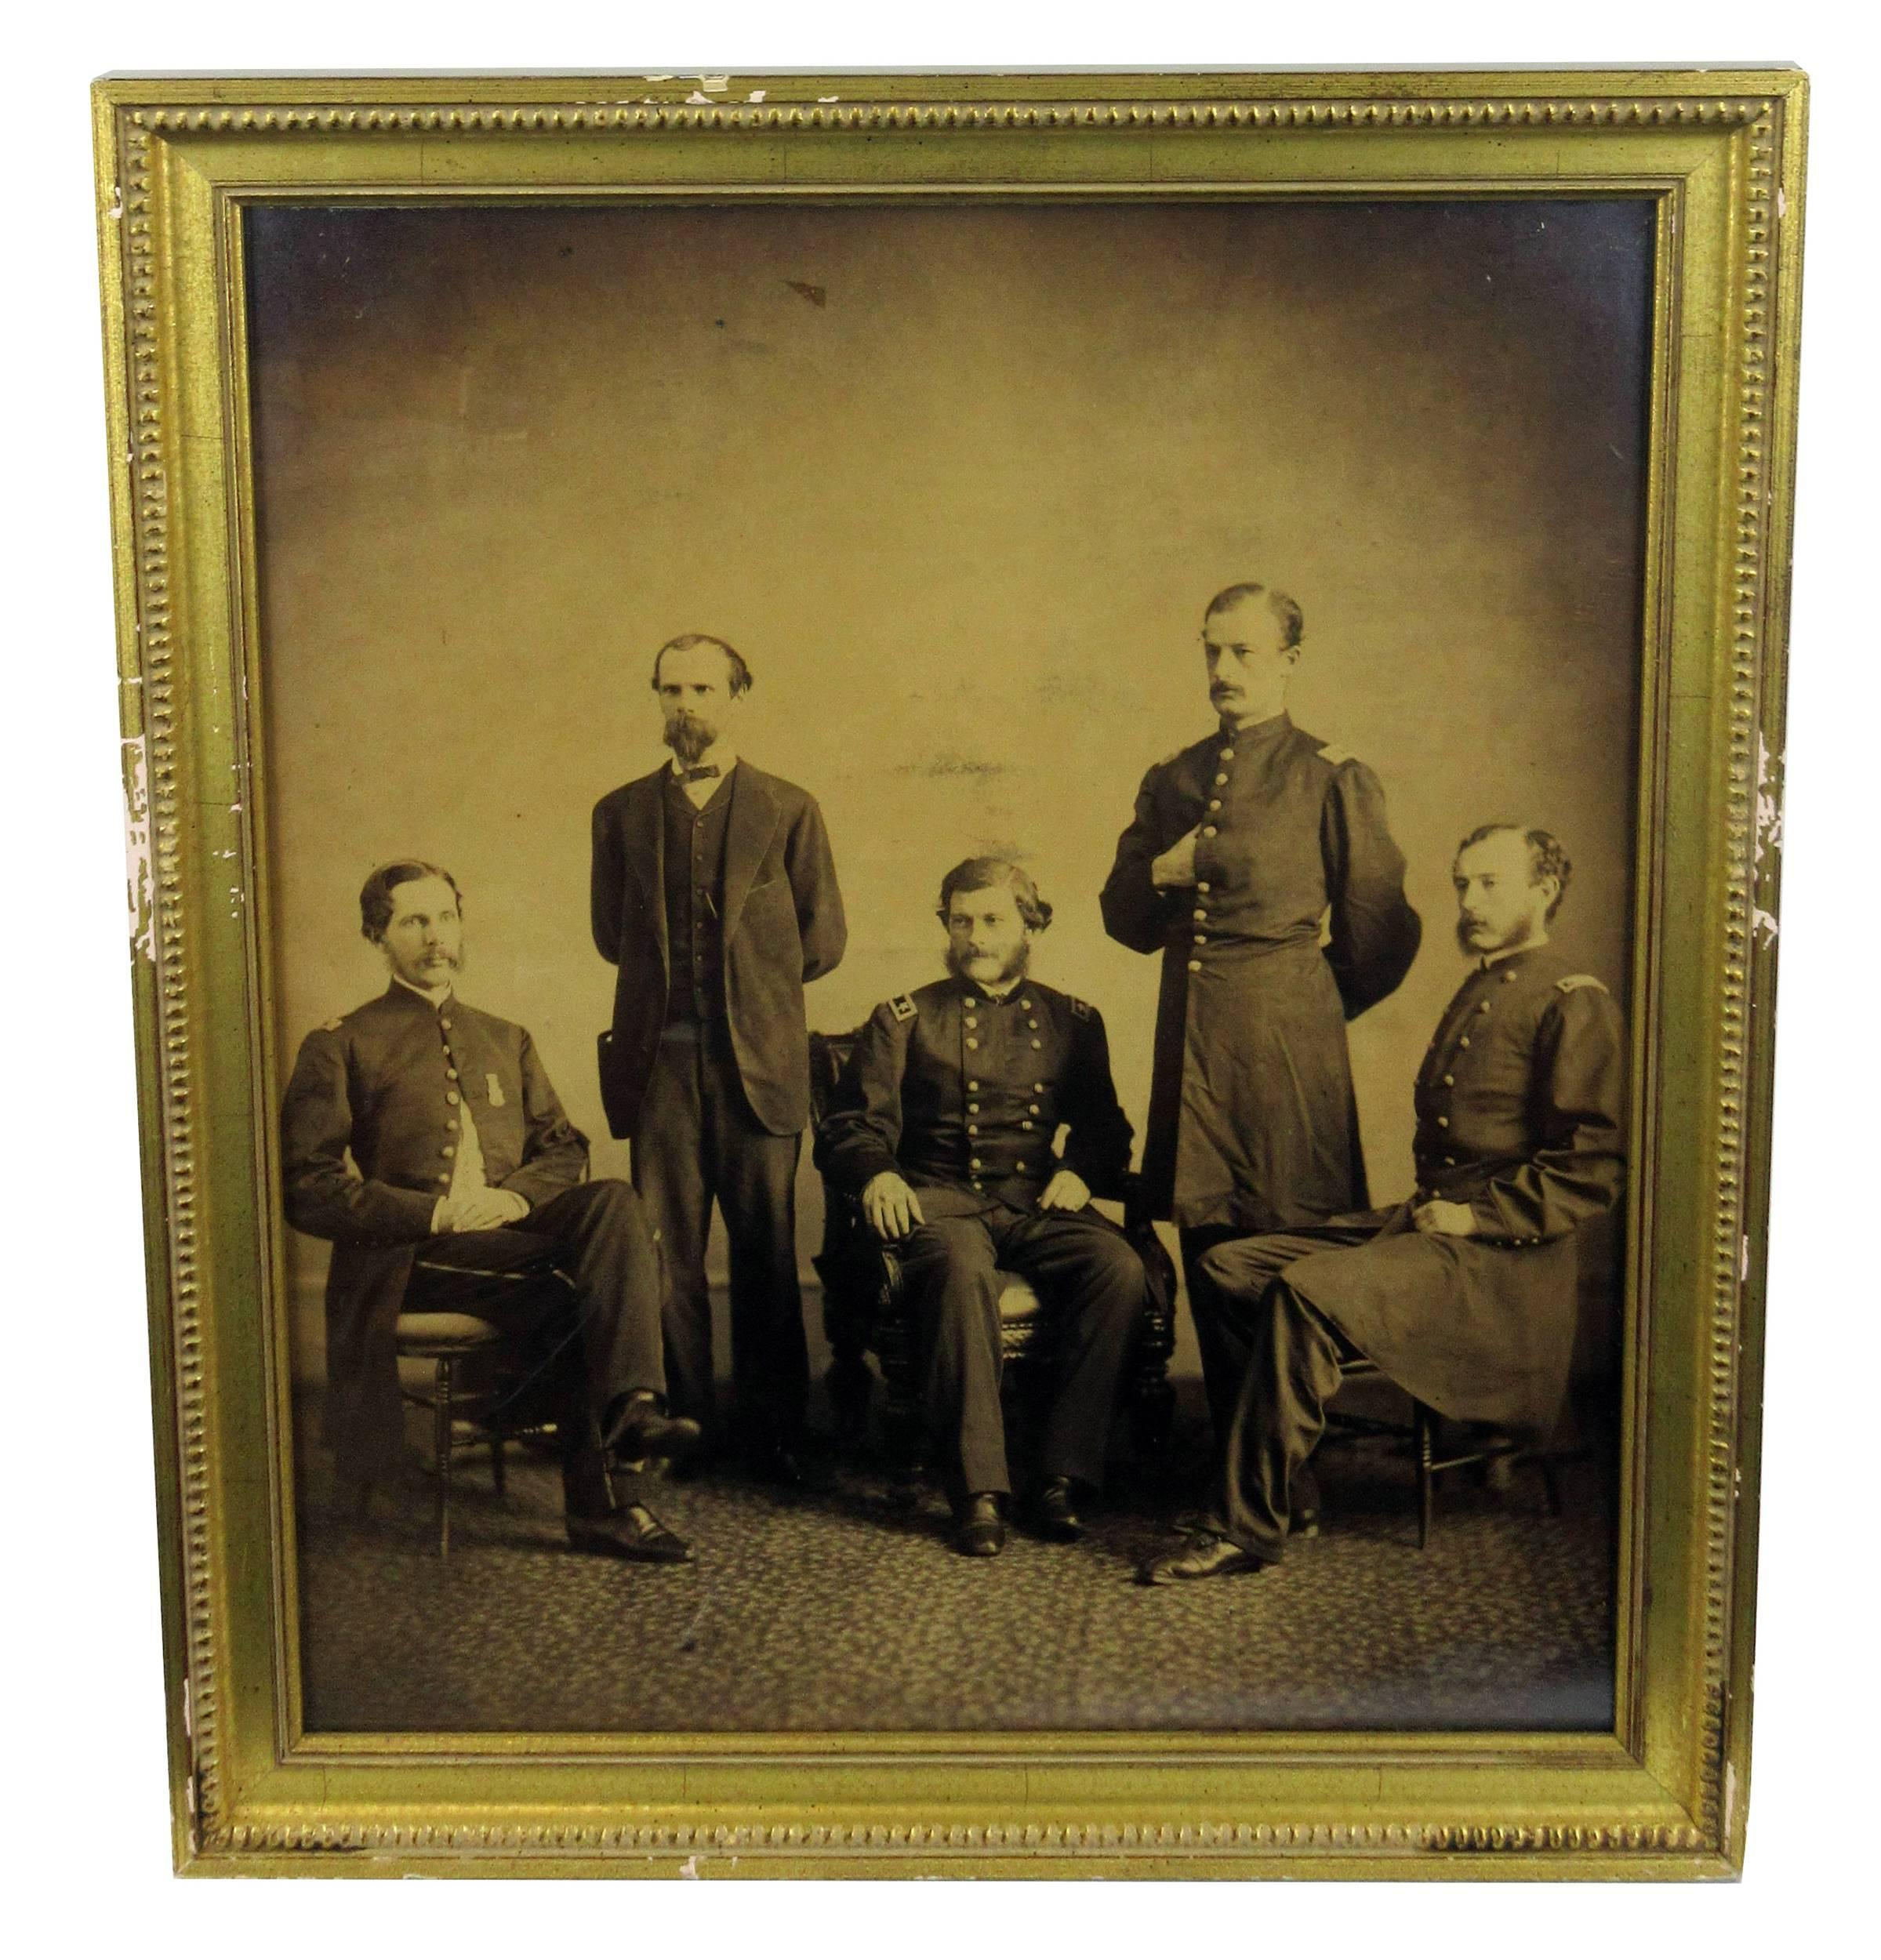 Civil War Albumen Photo Featuring General John Grubb Parke & Other Union Army Officers